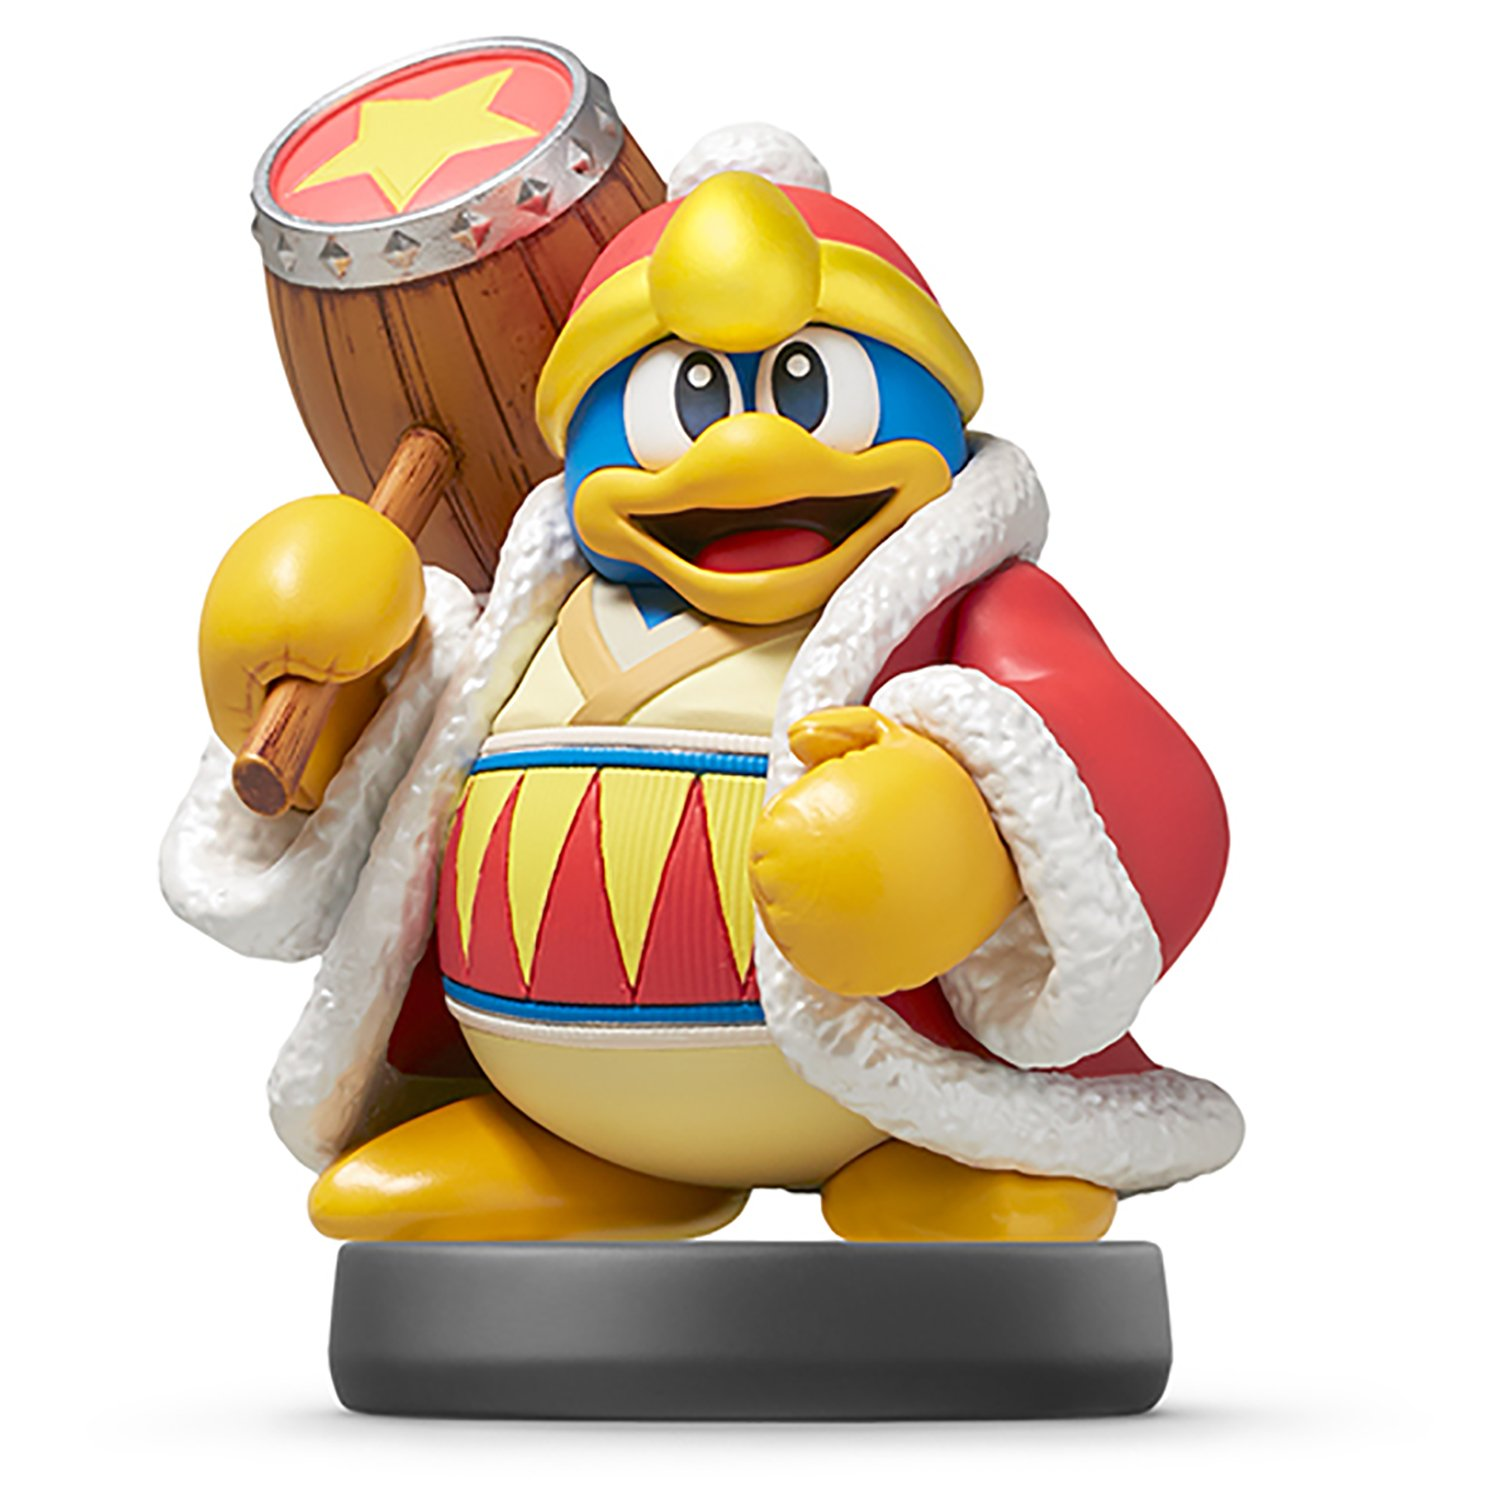 Nintendo Super Smash Bros King Dedede amiibo by Nintendo